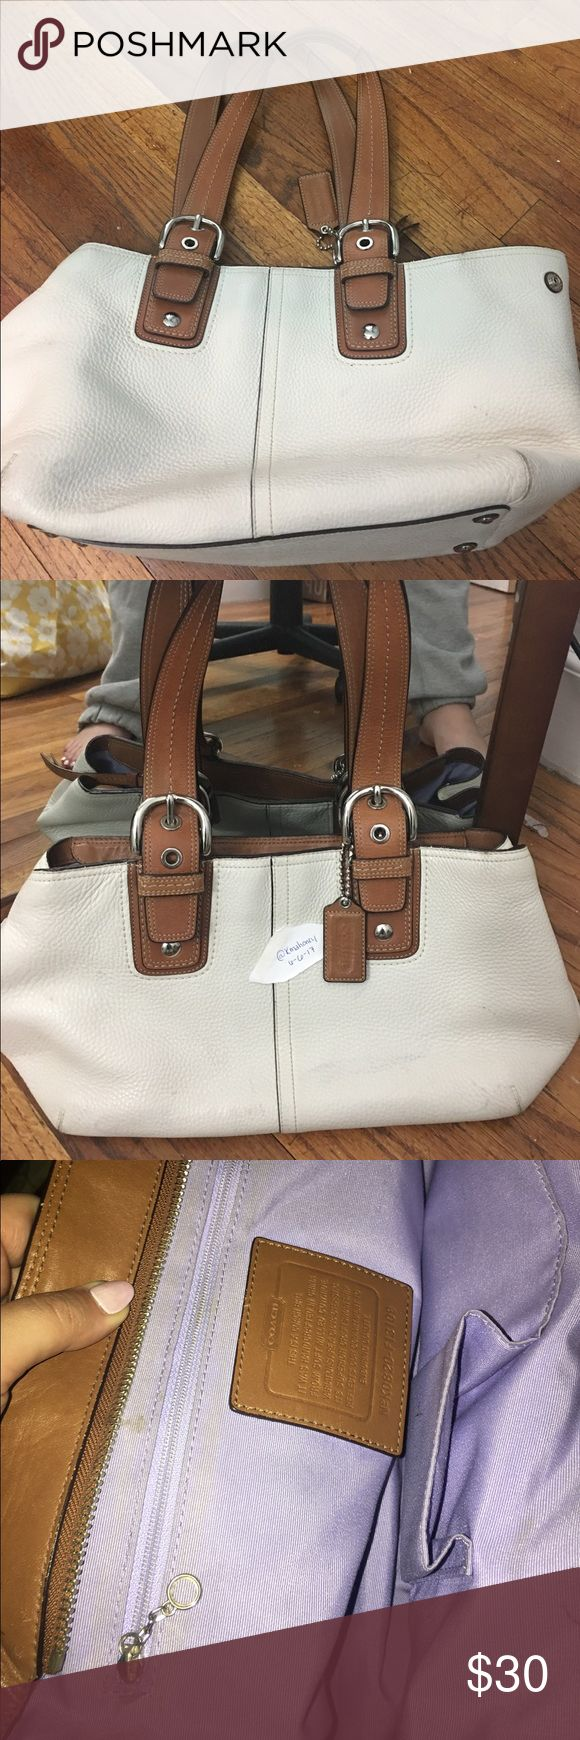 Coach Leather Cream Shoulder Bag Used COACH Leather Shoulder Bag with cream colored exterior, light brown handles and lilac interior.   This bag has been well loved but still have much life left within her.  The exterior has a few scuffs and a little color transfer from jeans.  I haven't tried to clean in depth- but I'm sure a little elbow grease will work.  Lilac interior has a few small stains and pen marking- but again- can be brought back with some TLC.  Great bag- zips close and has a…